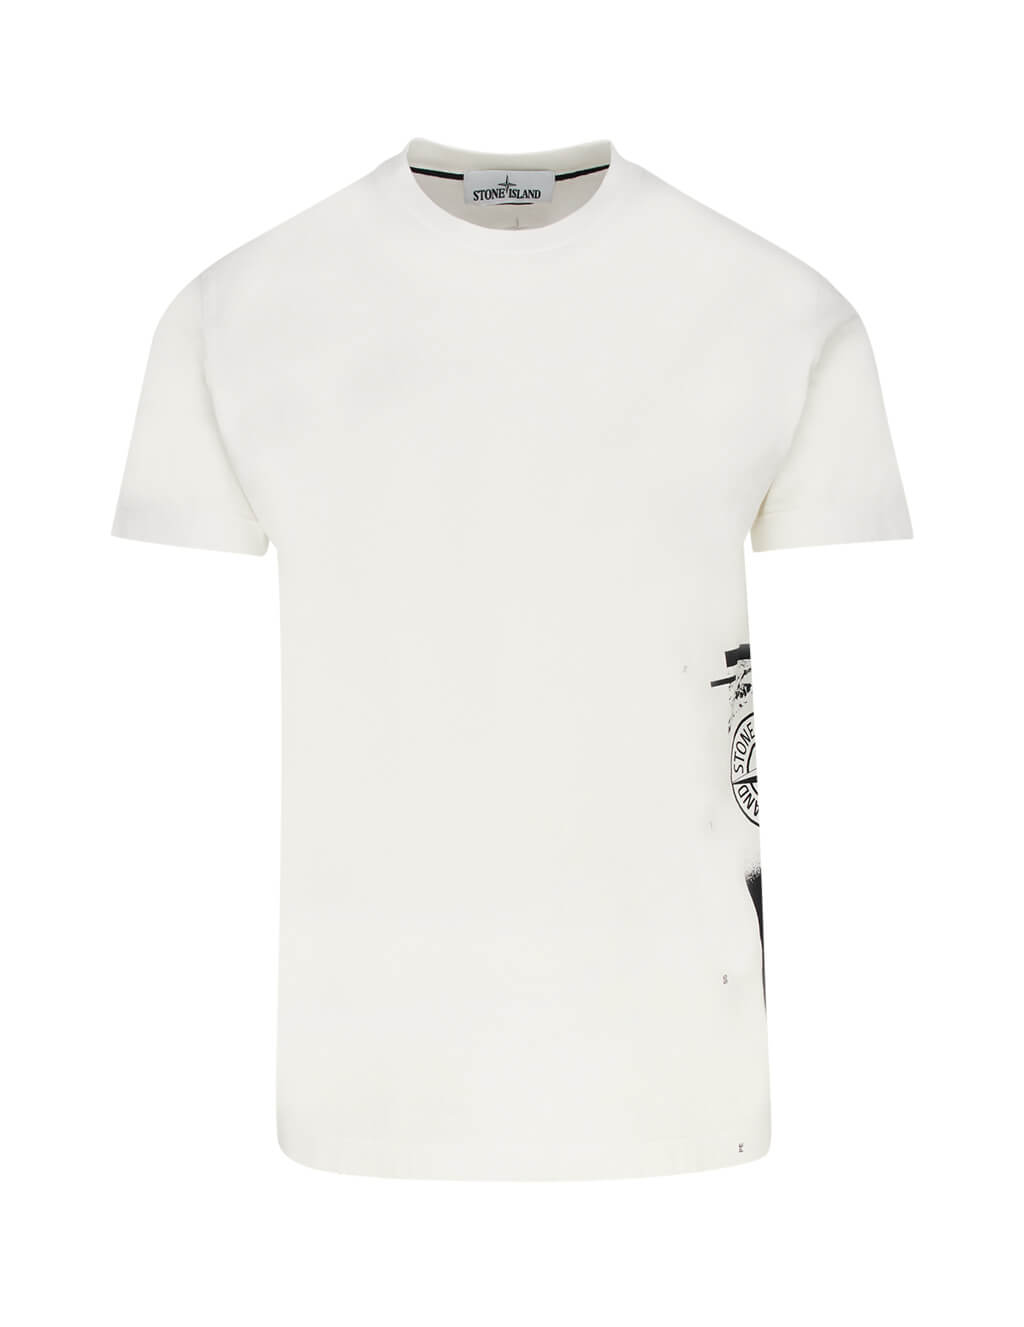 Stone Island Men's Ivory 2NS83 Graphic Cotton T-Shirt 72152NS83 V0093